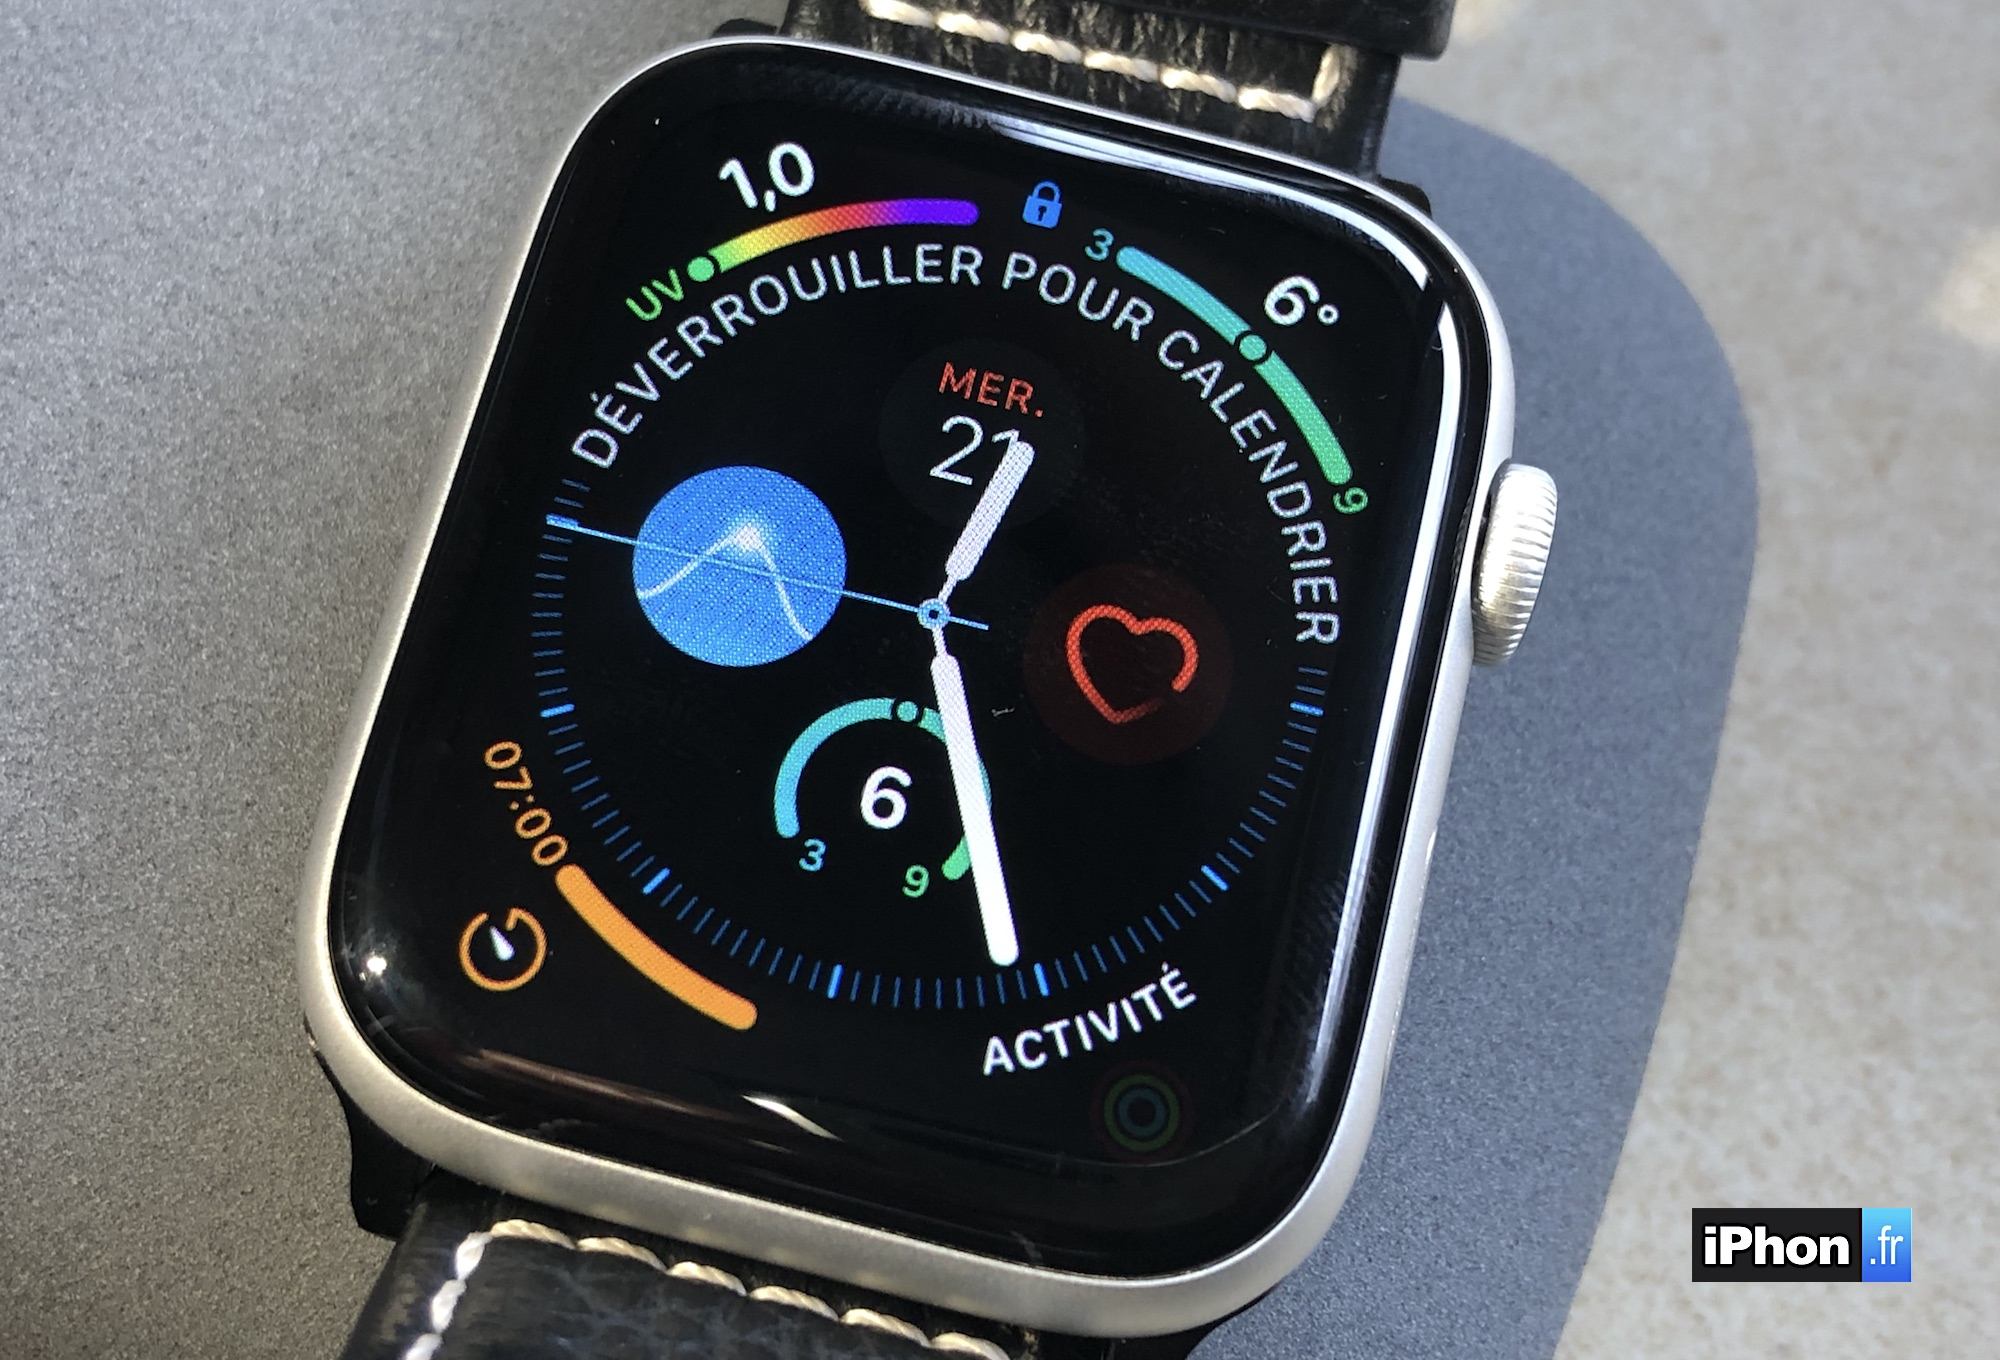 Apple imagine un iPhone et une Apple Watch renifleurs de gaz dangereux 1